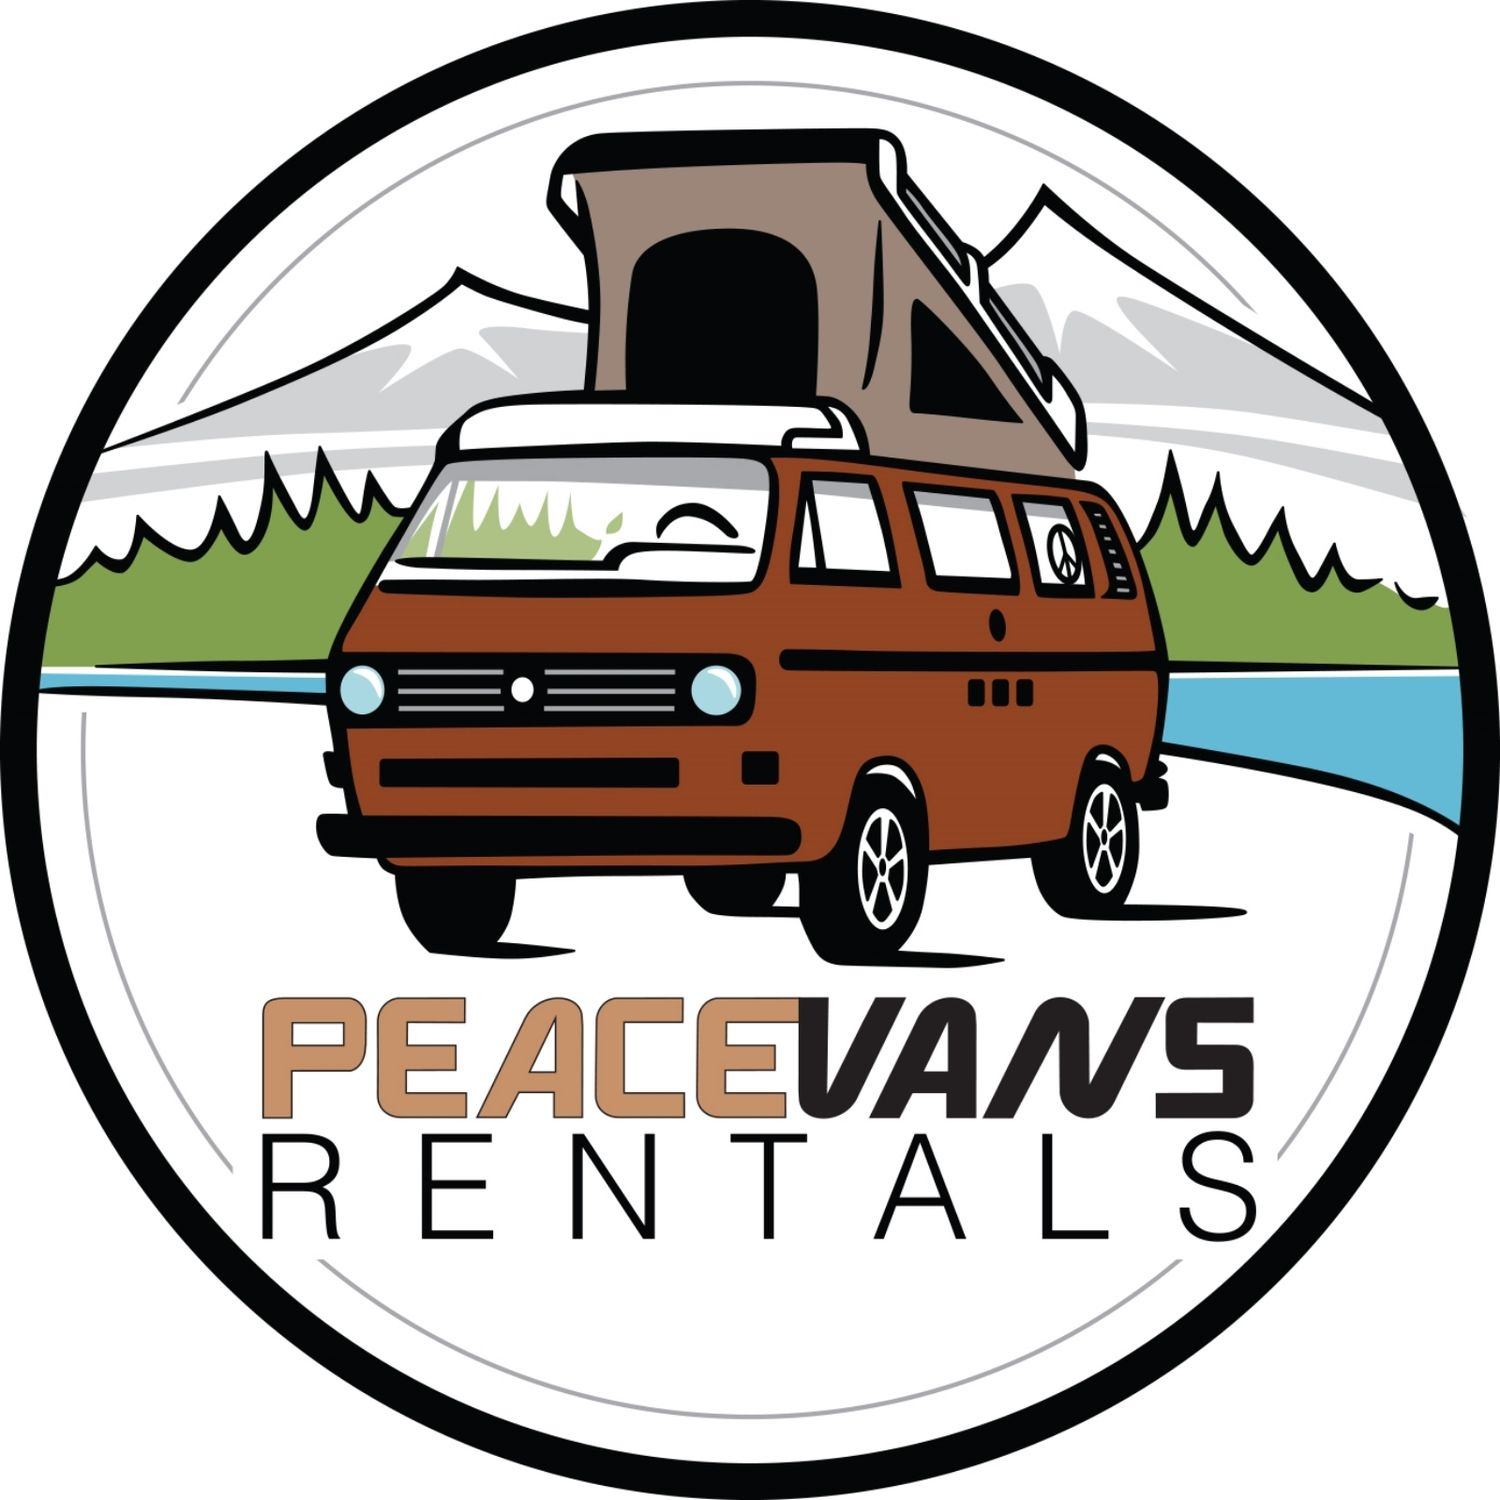 Vw rental rent a. Minivan clipart van camper